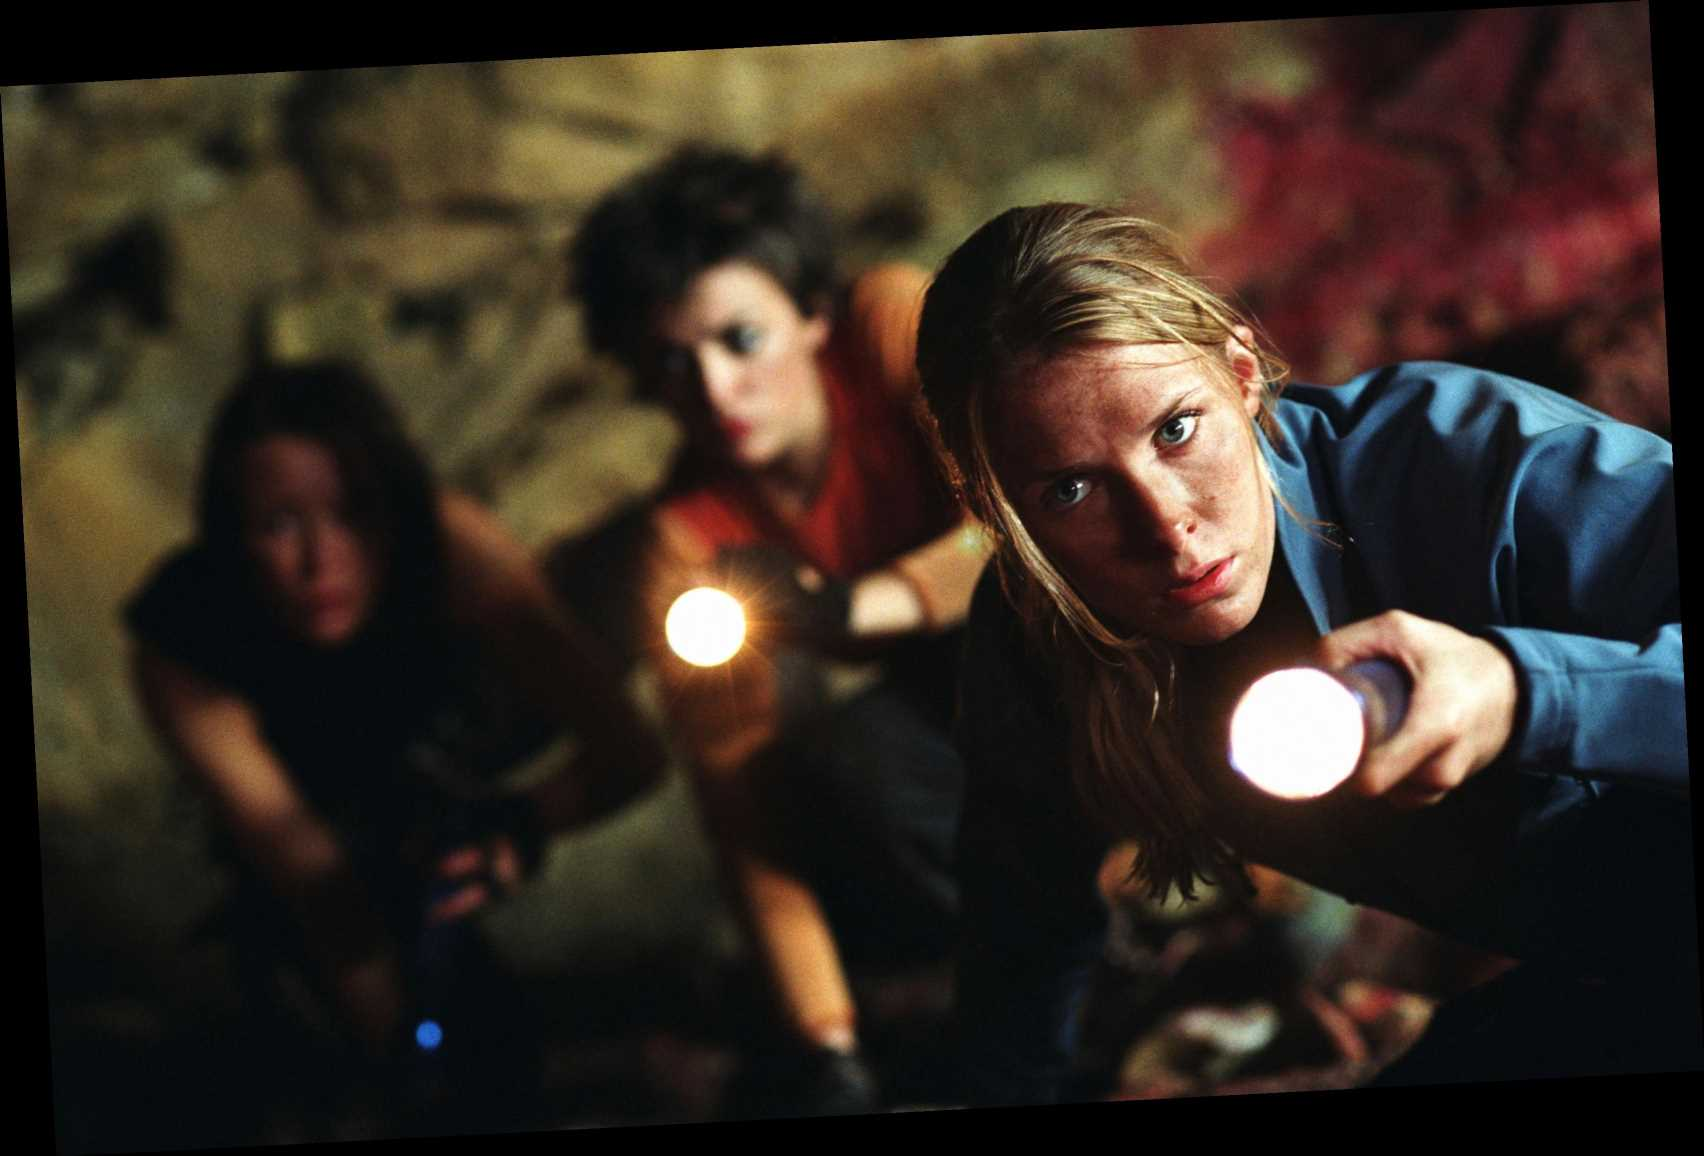 Stream of the Day: 'The Descent' Is a Feminist Horror Movie Not Afraid to Give Us Imperfect Women